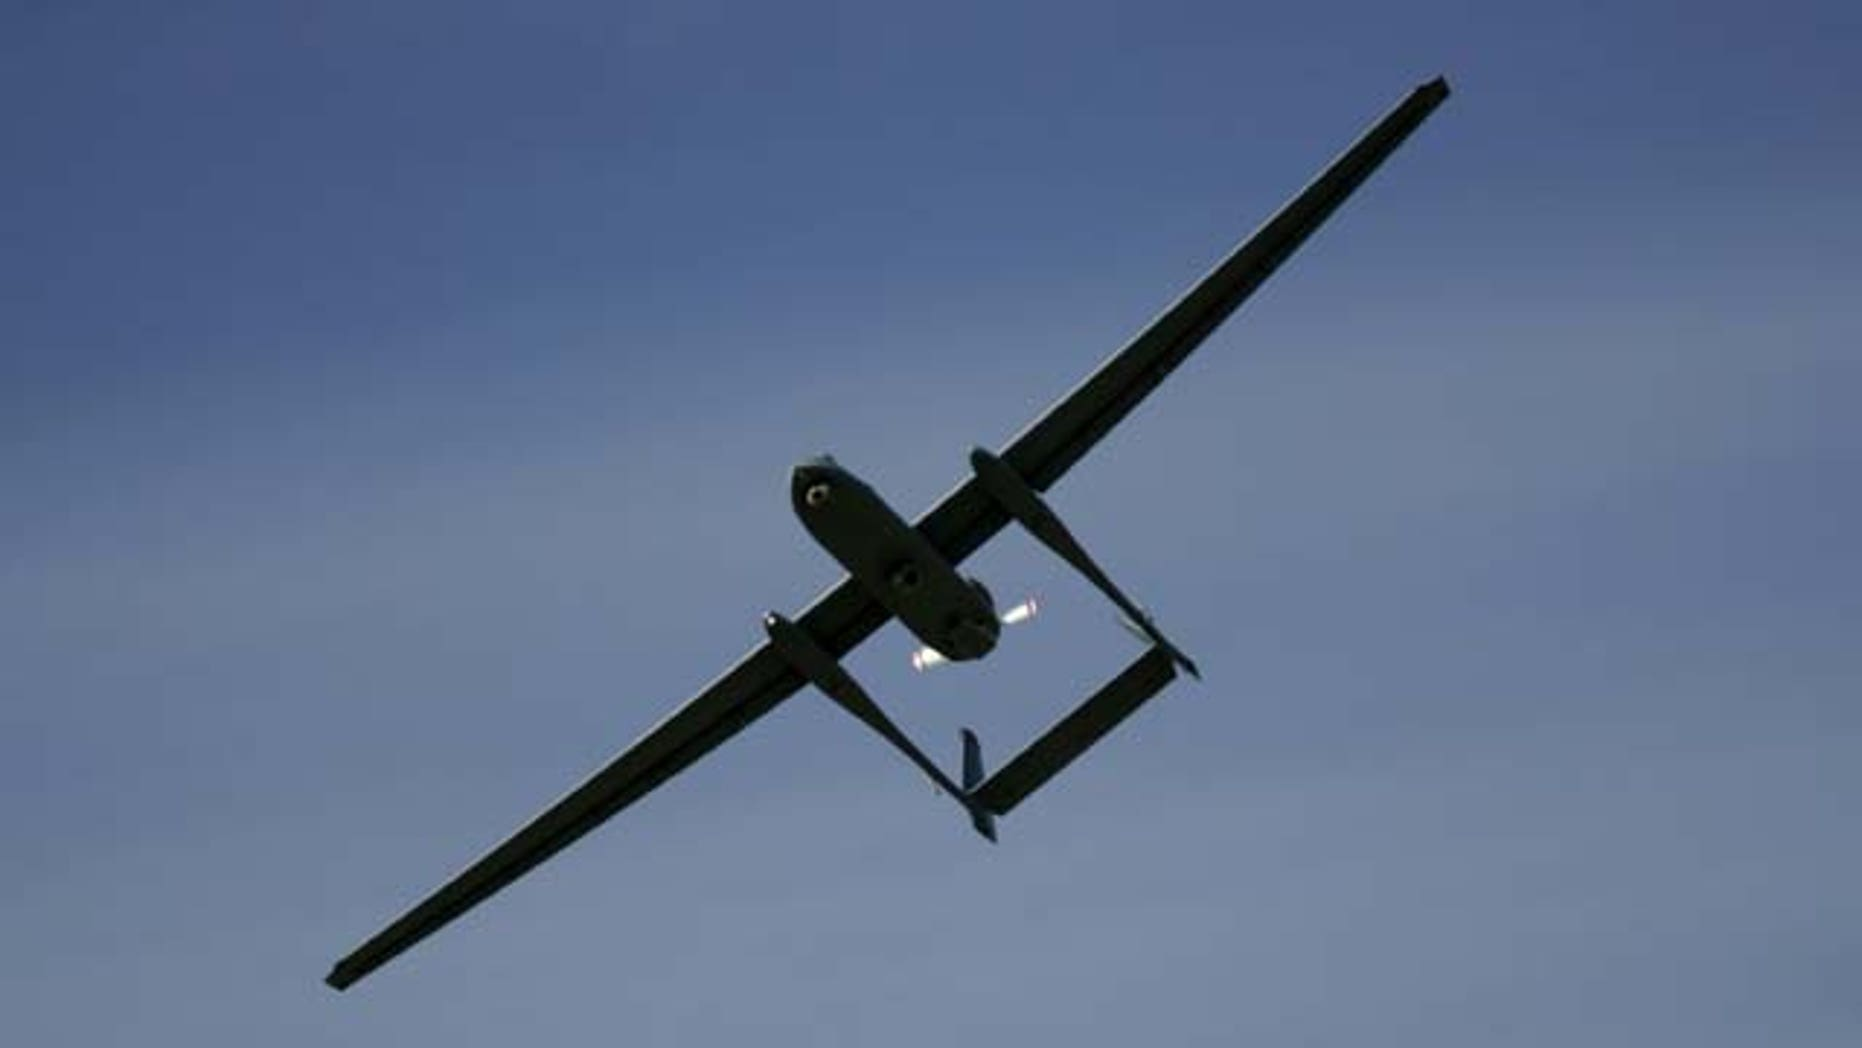 In this March 7, 2007, file photo, the Israeli army Heron TP drone, also known locally as the Eitan, flies during a display at the Palmahim Air Force Base in Palmahim, Israel (AP Photo)